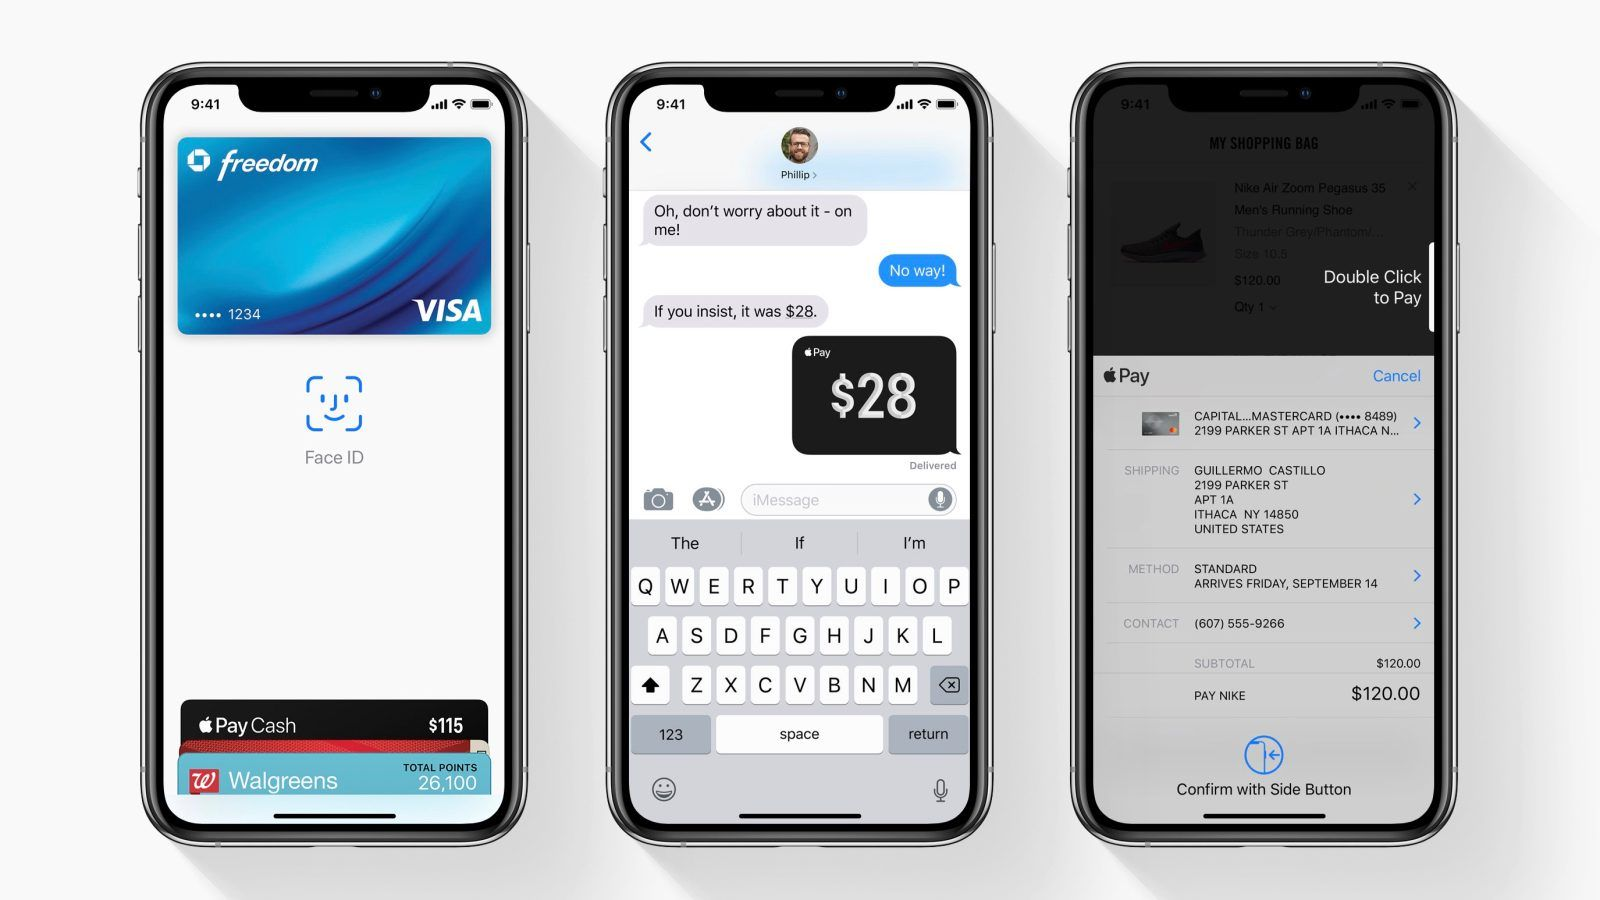 After setting up Apple Pay on your iPhone X, XS, or XR, you